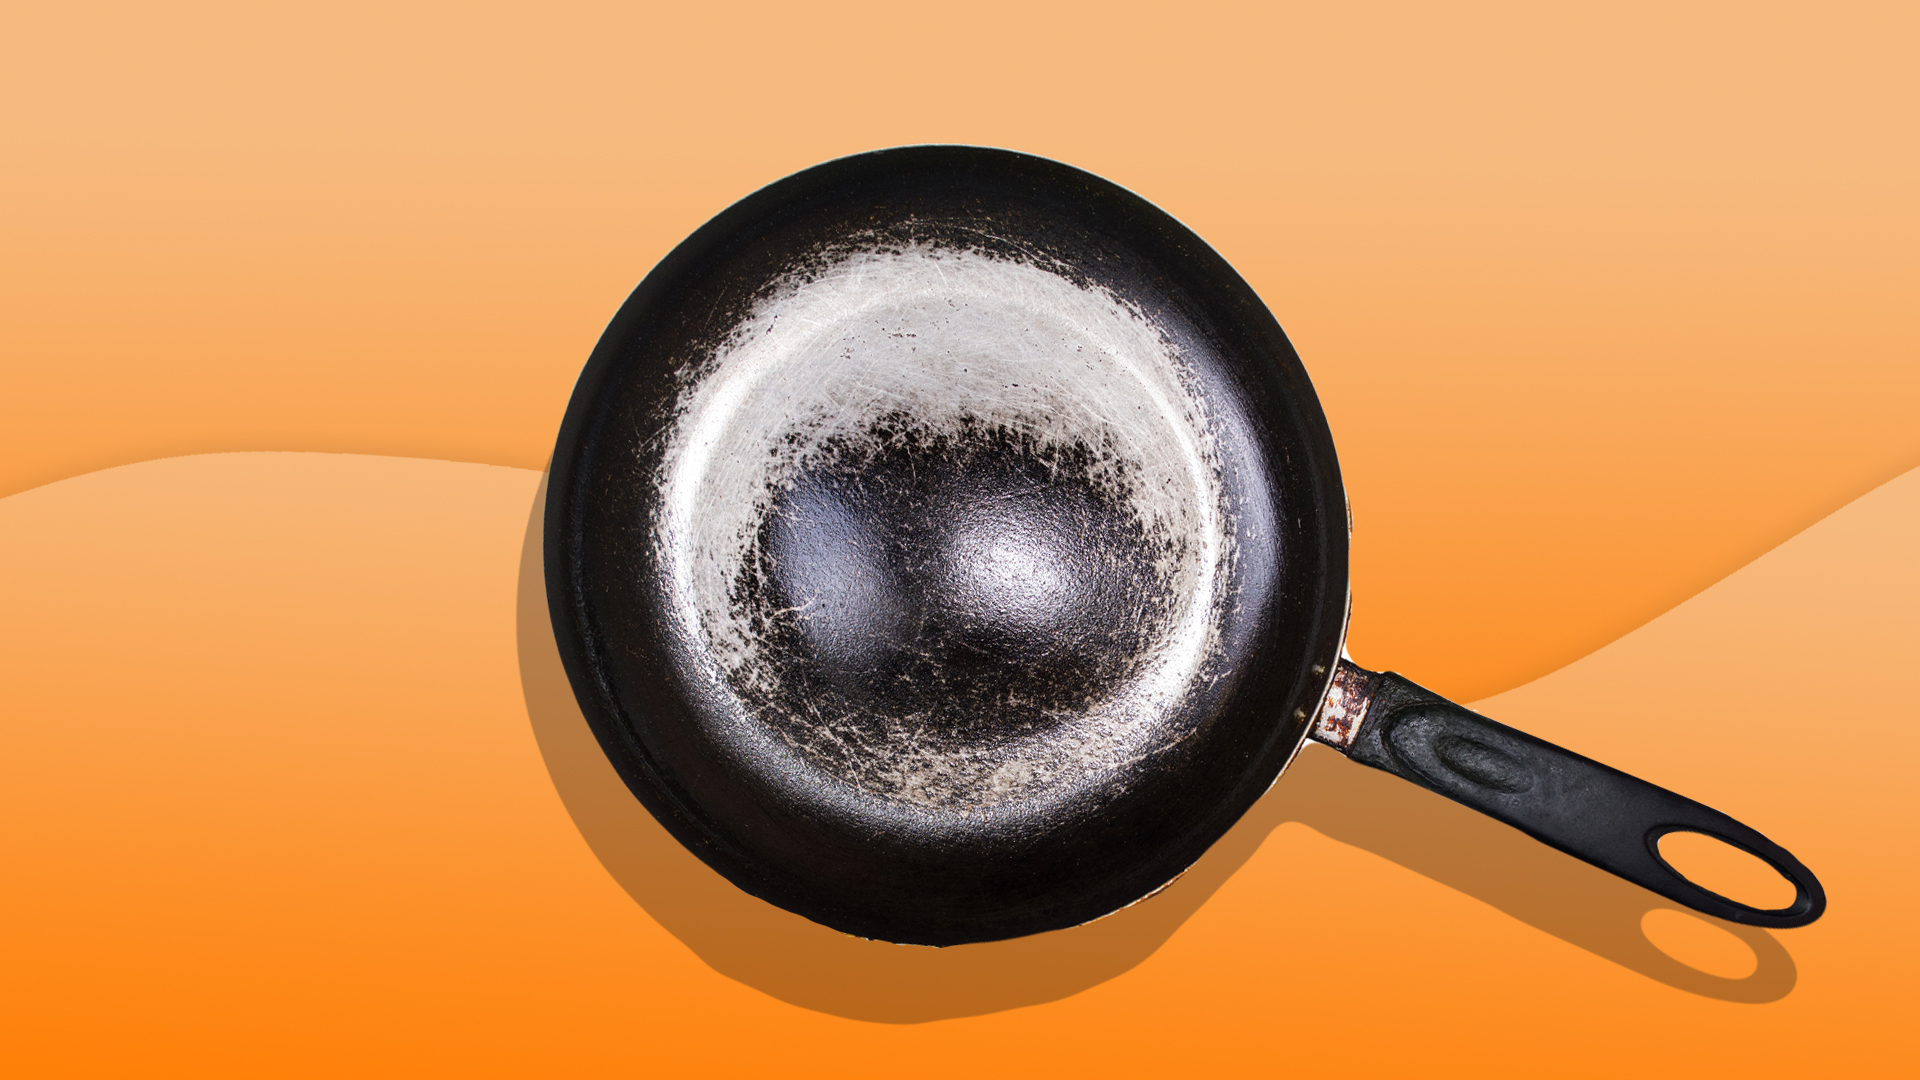 How to clean a burned stainless steel pot